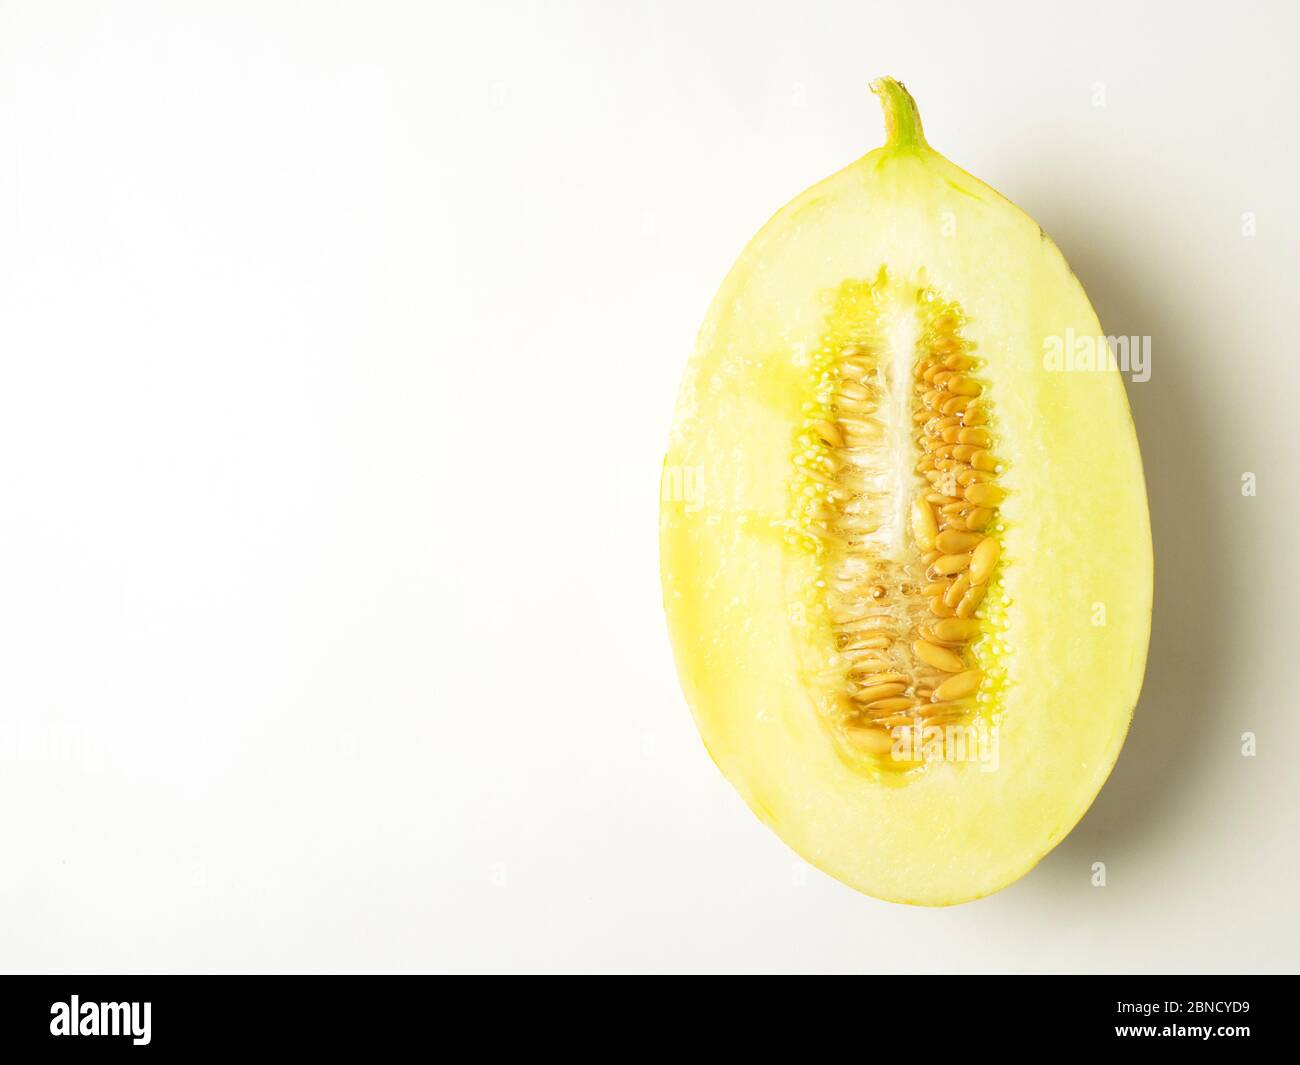 Half a canary melon with seeds on a white background with copy space Stock Photo